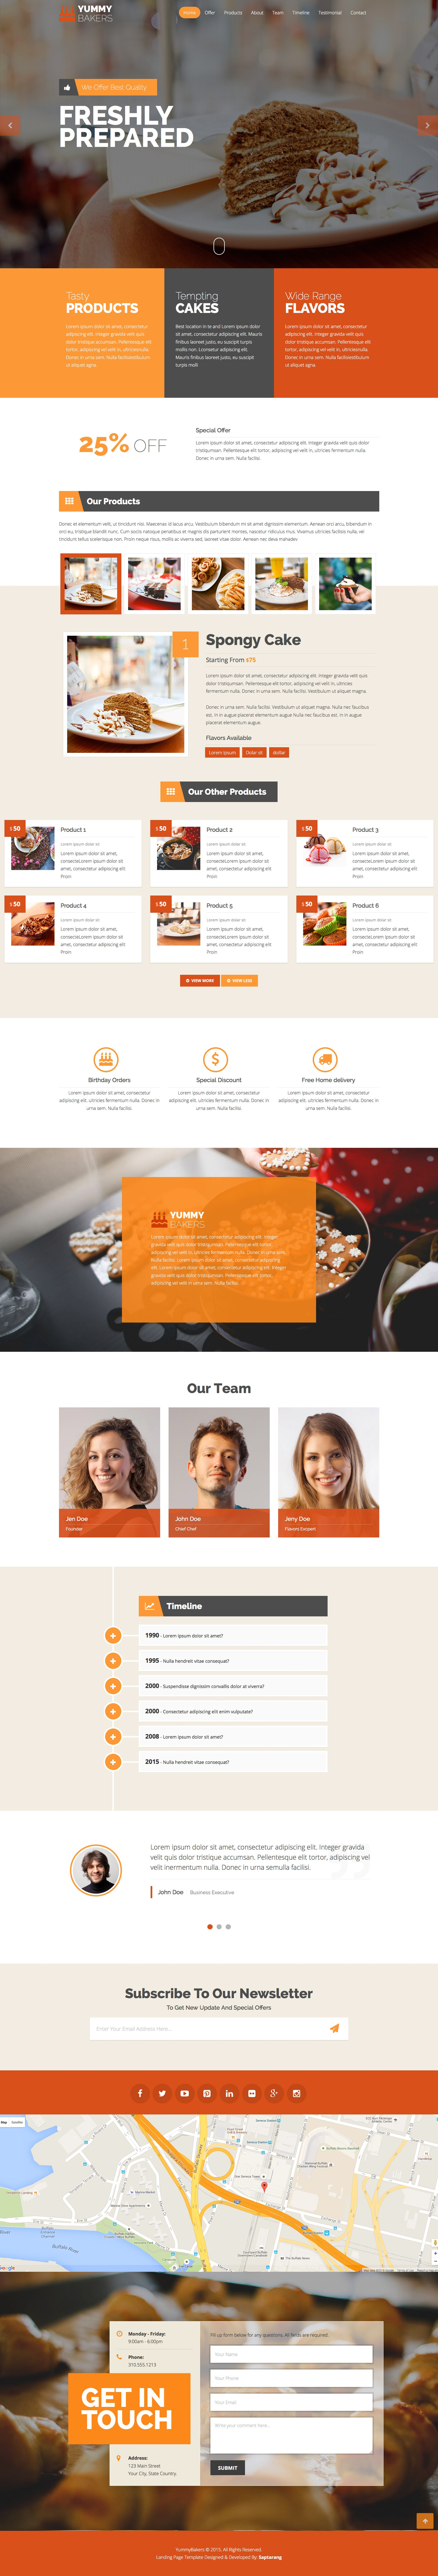 Product services landing page 02